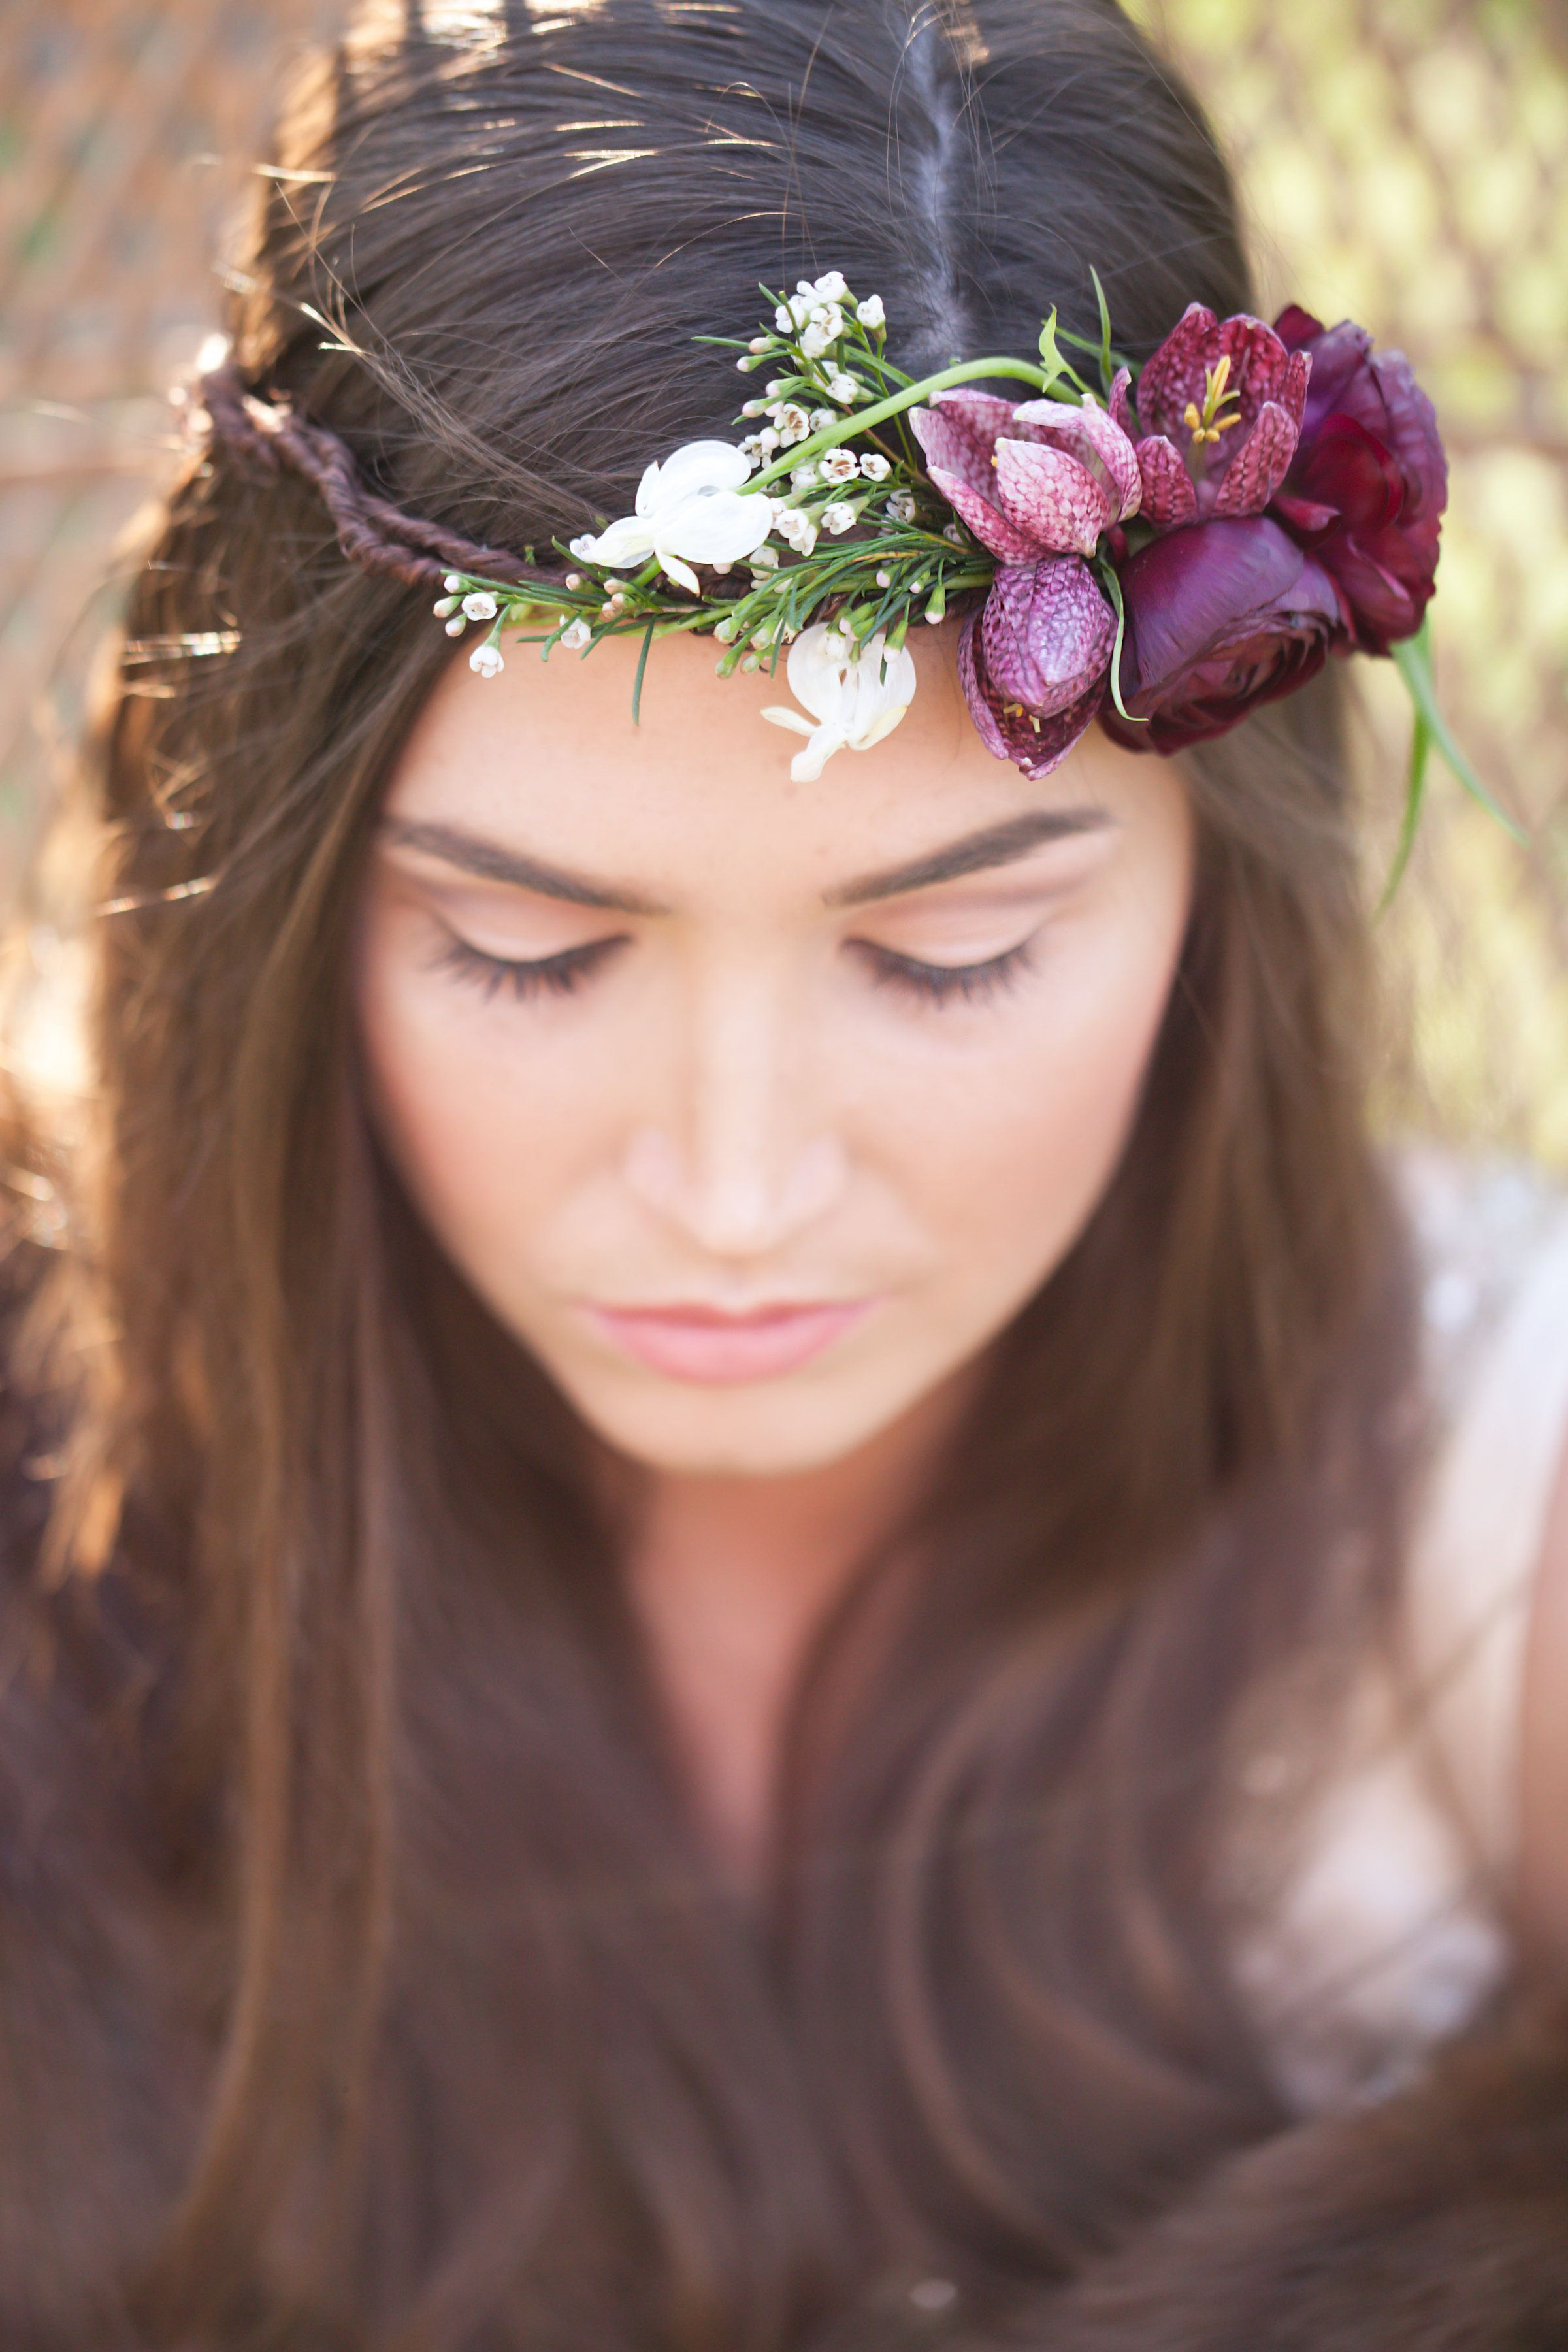 Wildwood Floral Co - boho photo shoot, jennifer soots photography, floral crown